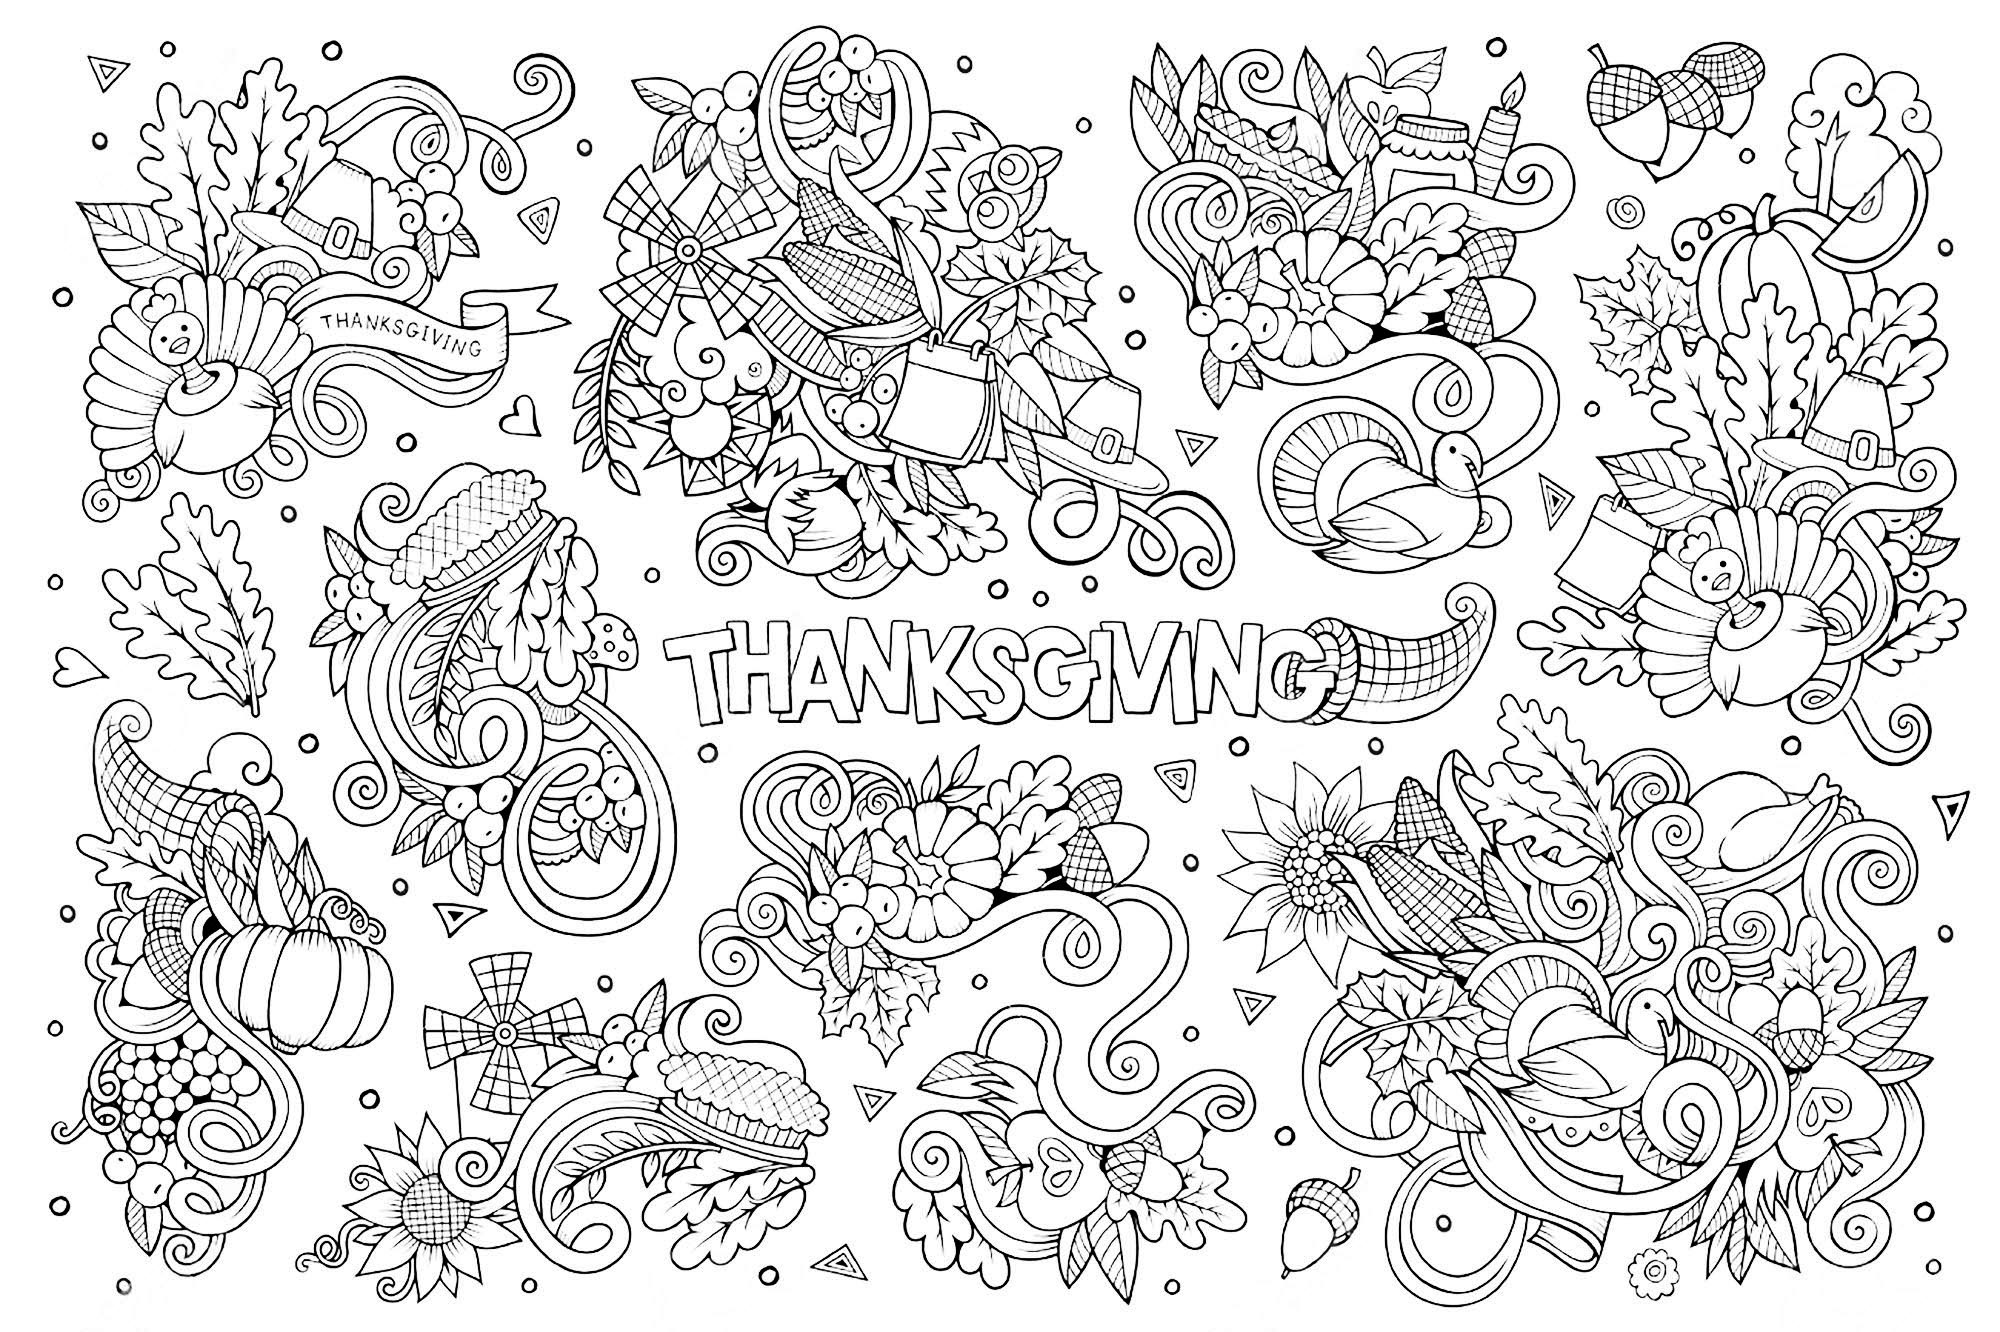 Thanksgiving Doodle 2